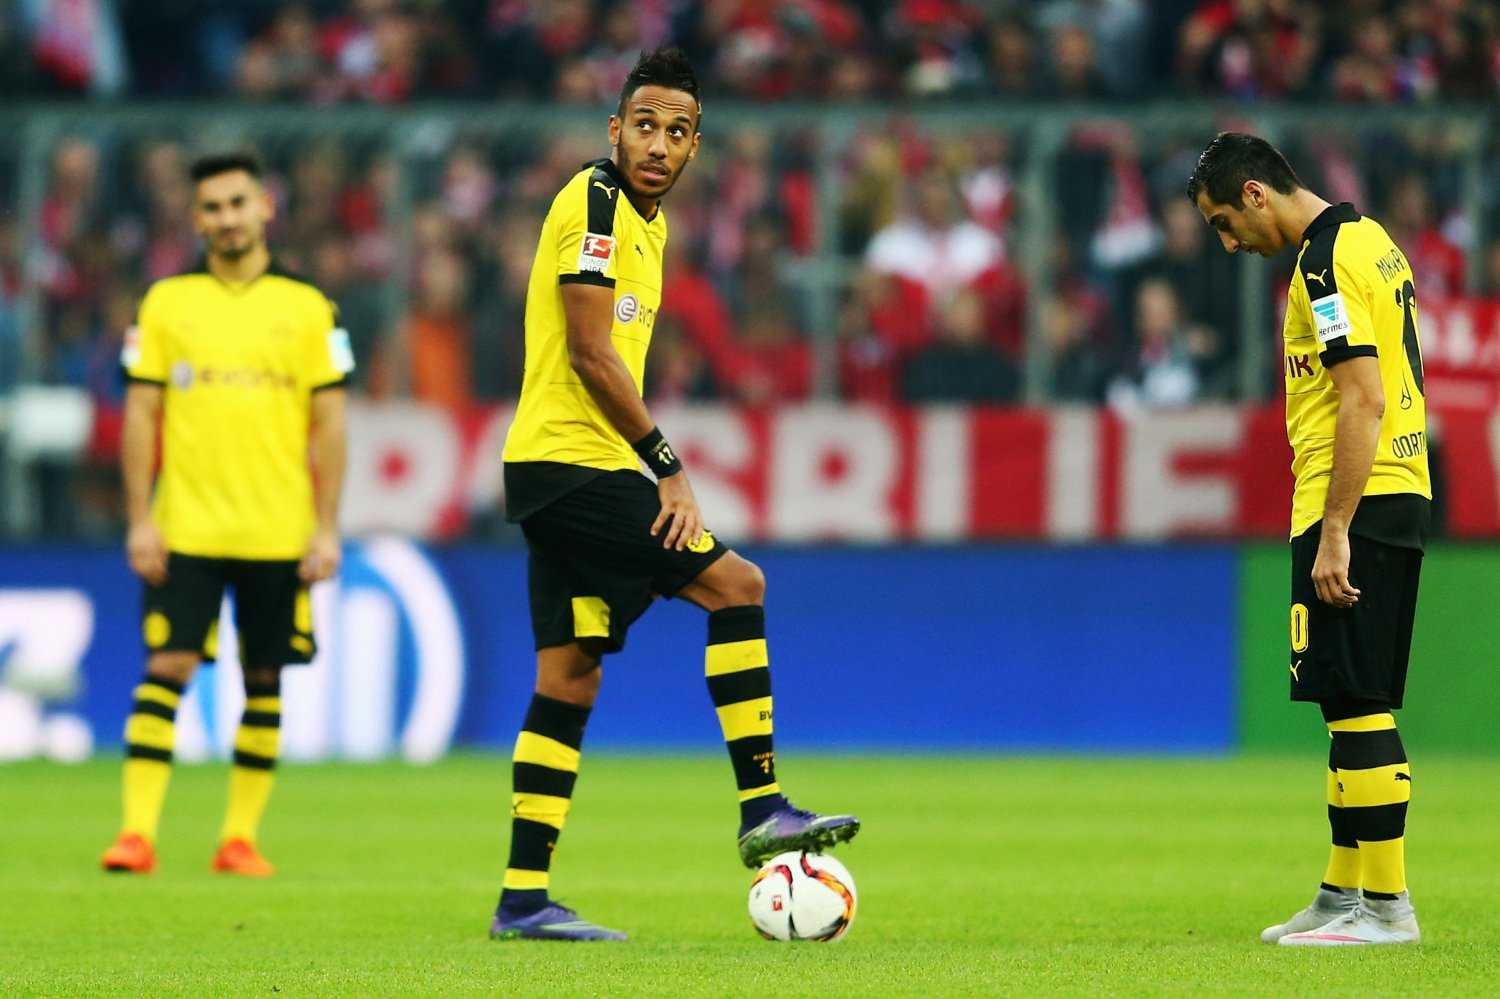 TO ASSISTS: Pierre-Emerick Aubameyang spilte en stor kamp.